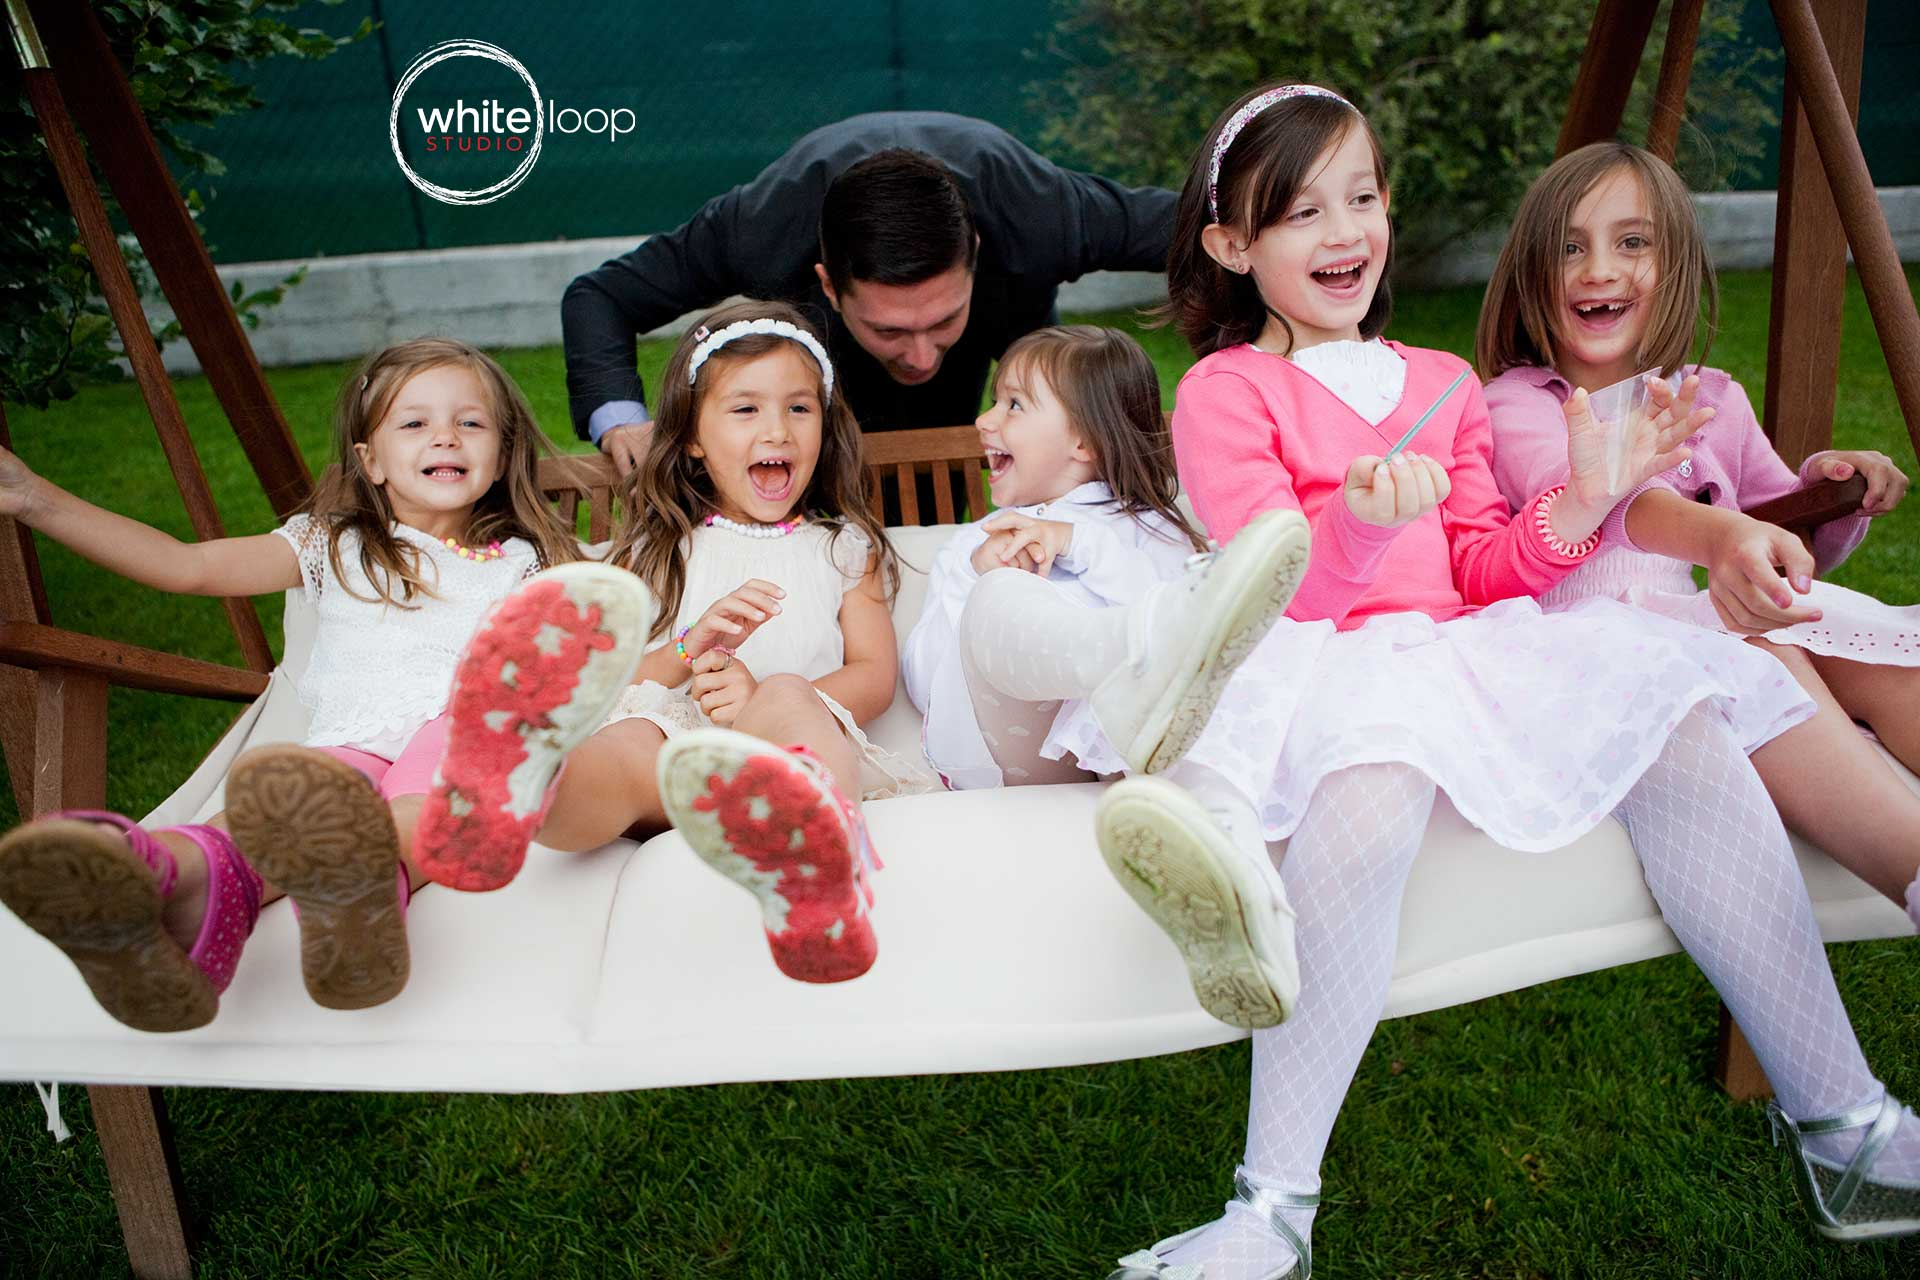 Here are some little girls having fun sitting in a big rocking chair and the groom is in the back playing with them.